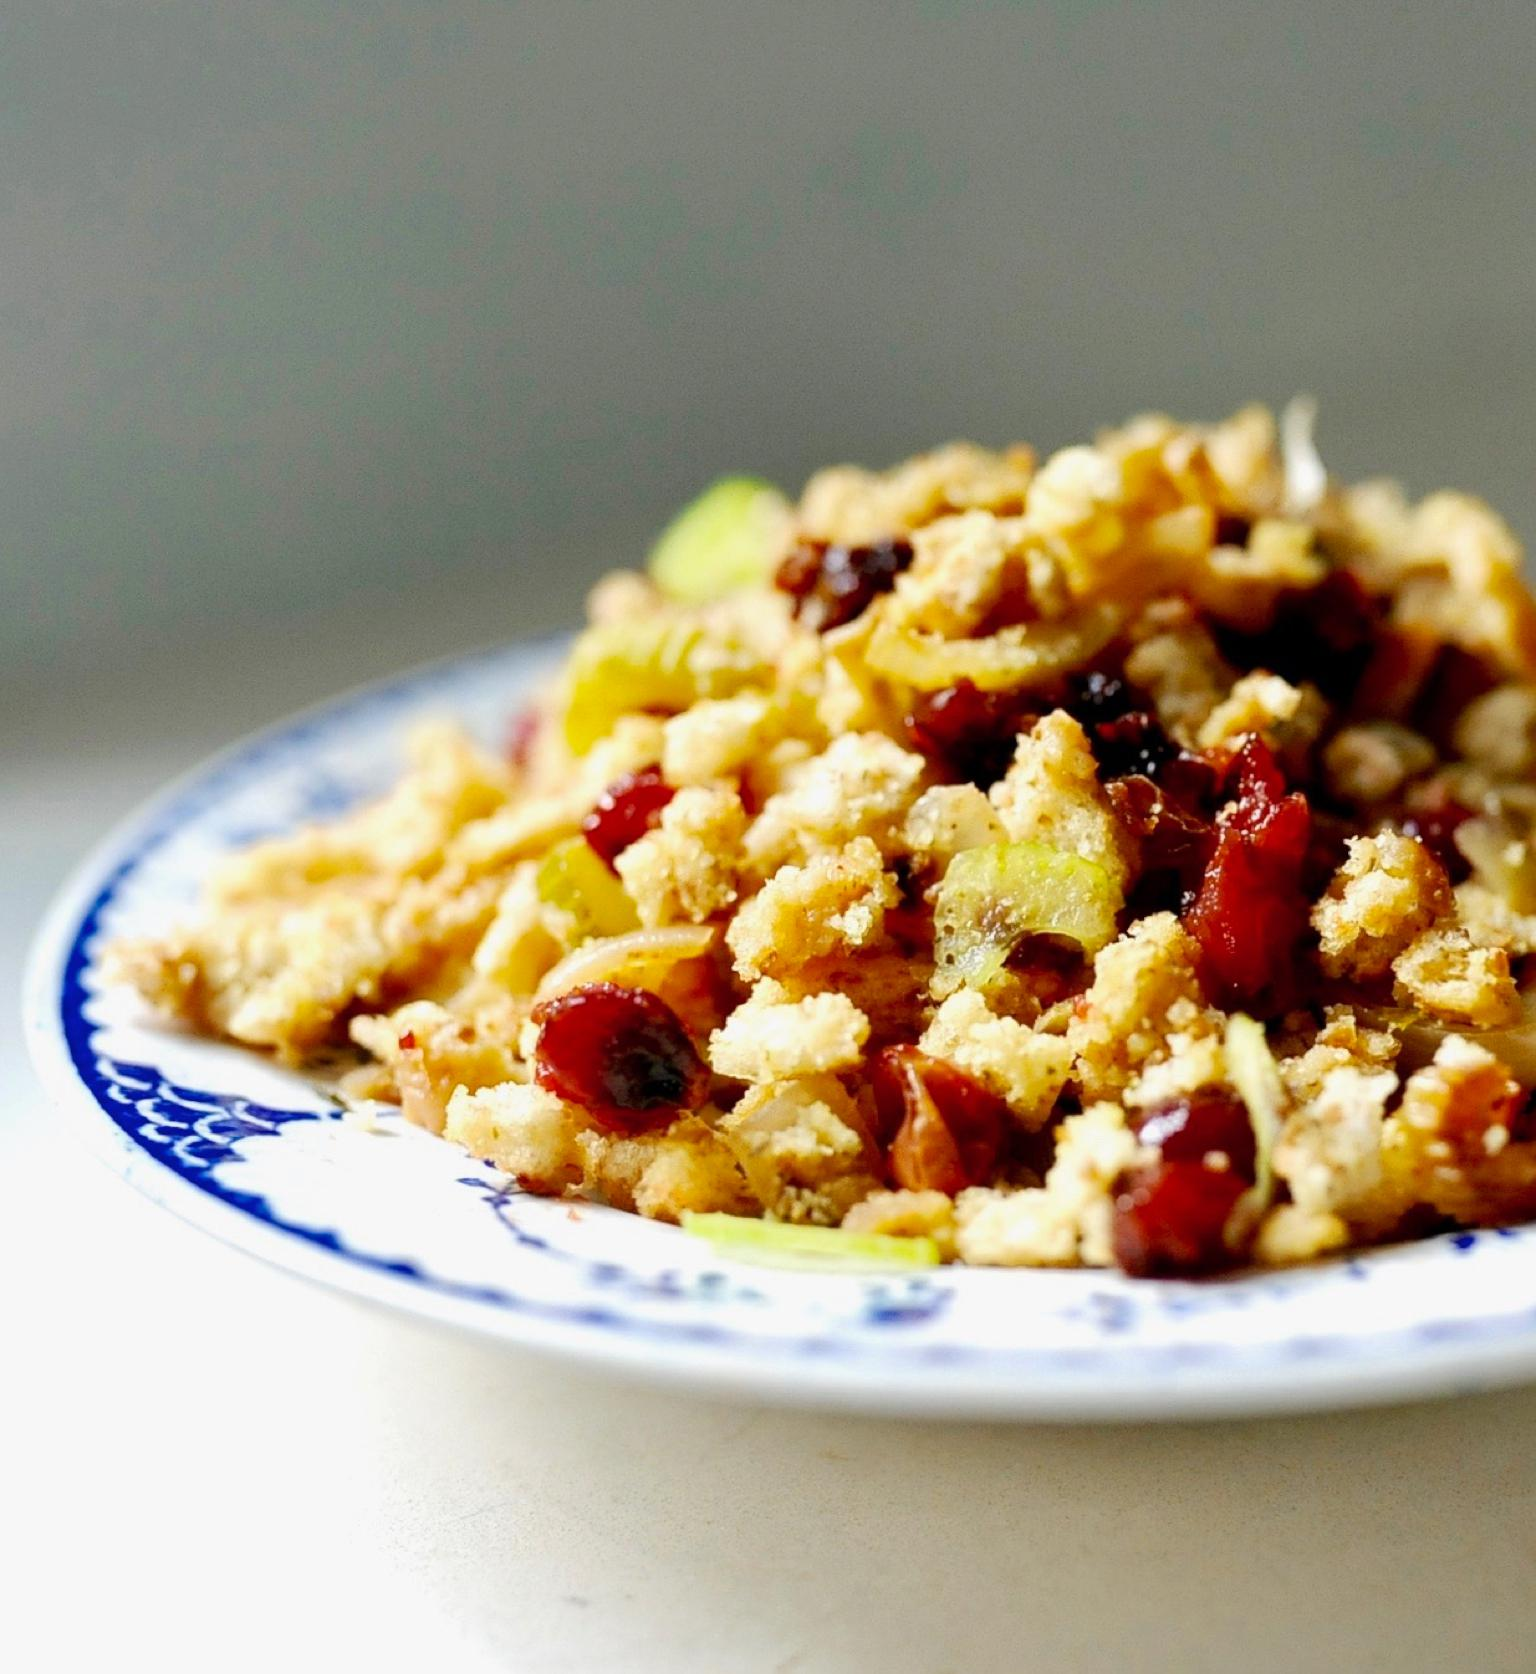 Sourdough Stuffing with Cranberries (Vegan)